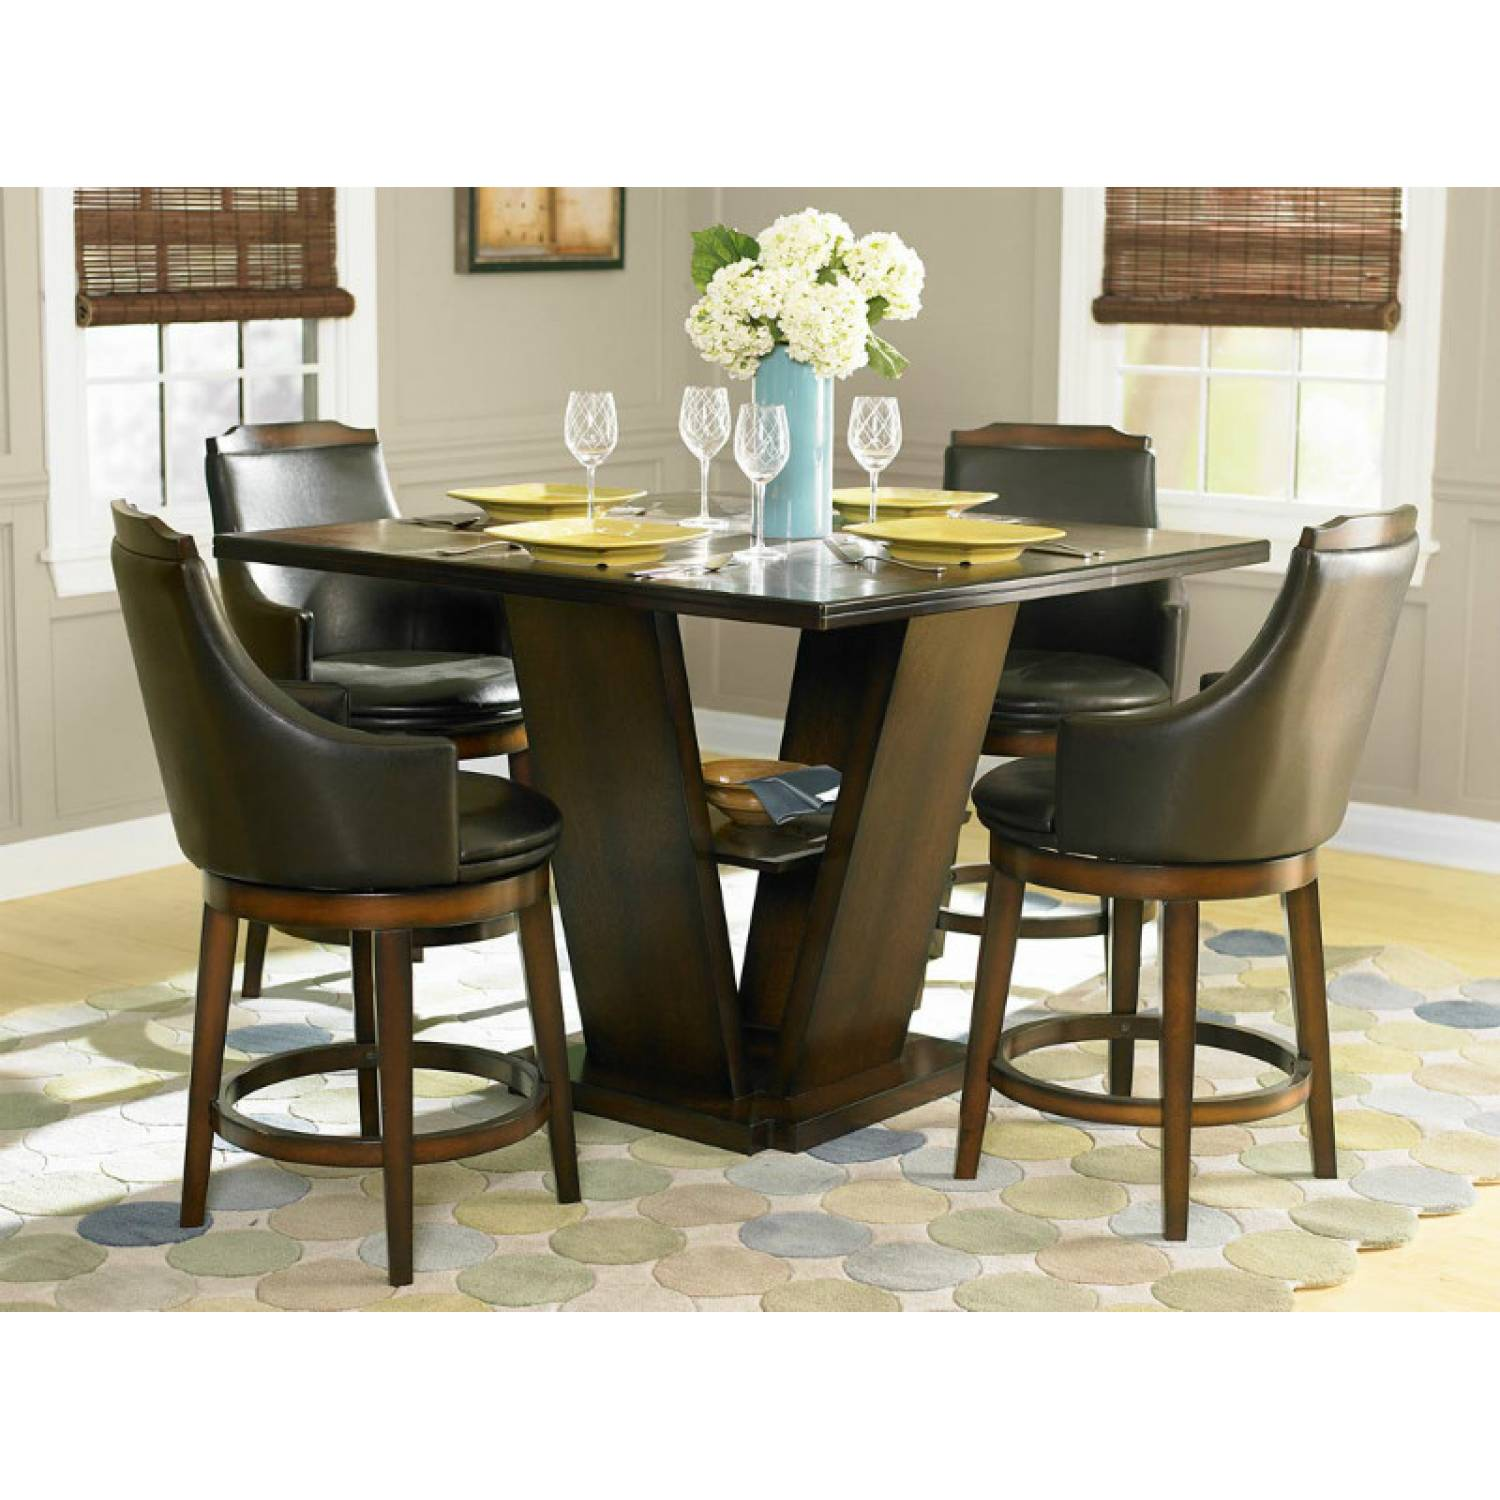 Counter Dining Room Sets: Bayshore Counter Height Dining Set 5pc Set (TABLE+4 SIDE